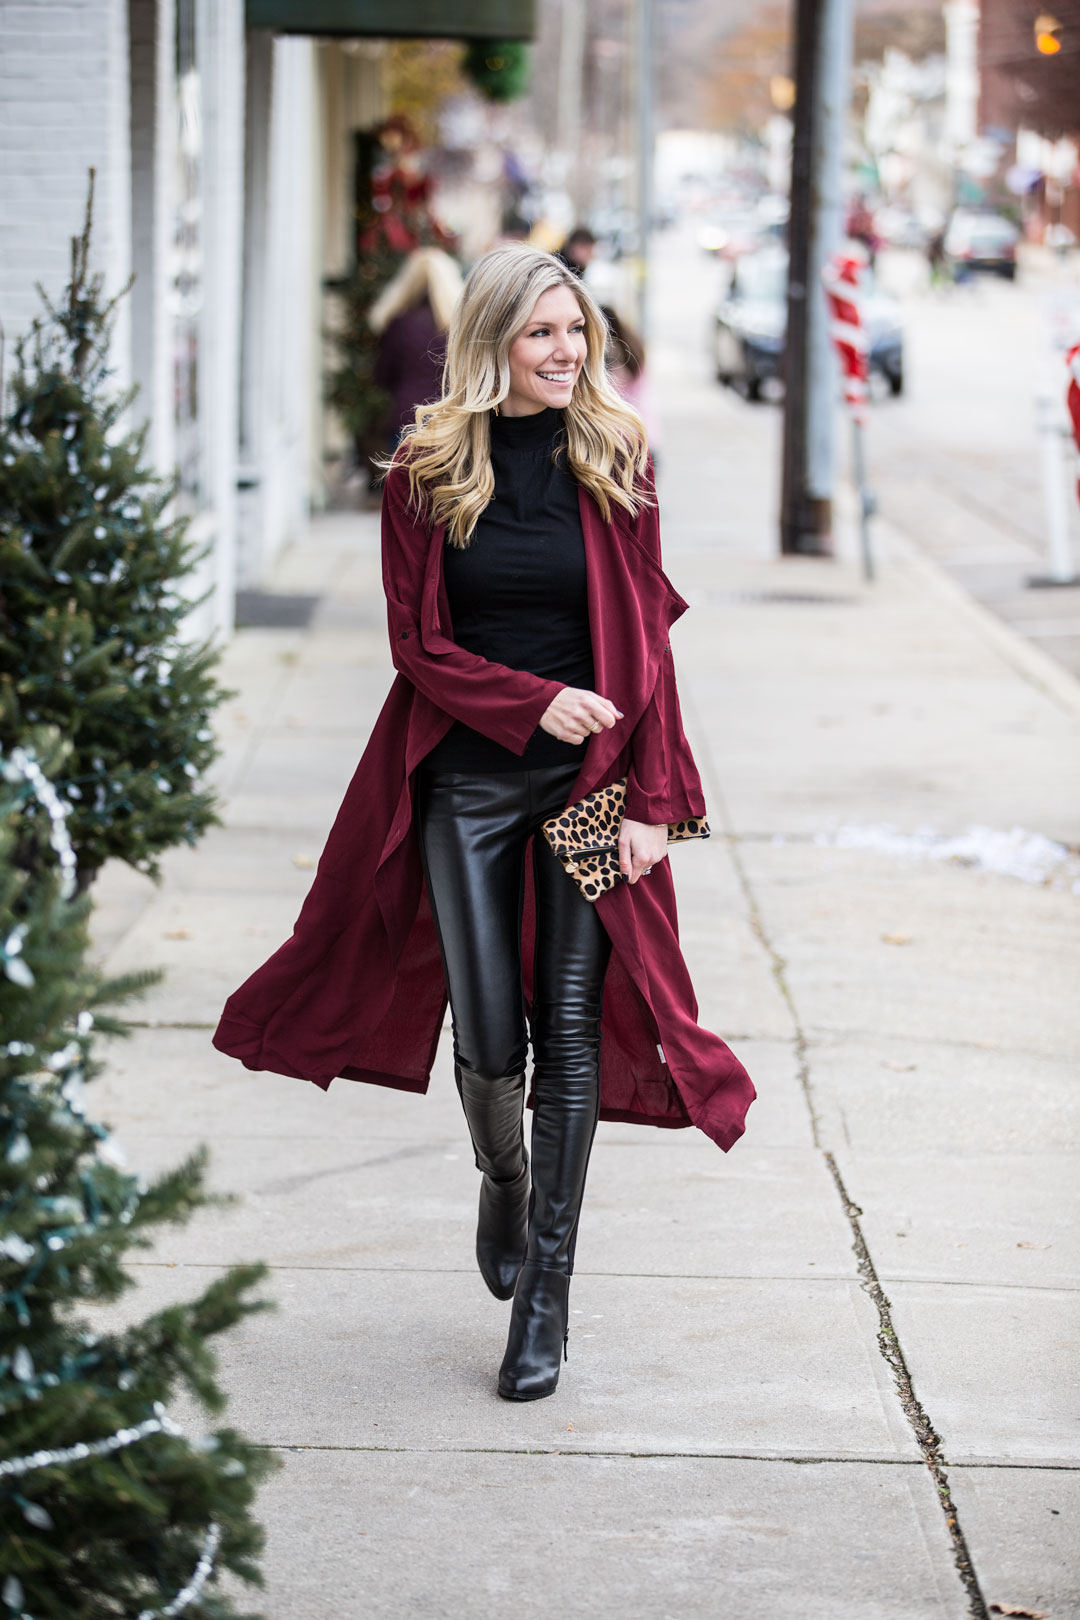 the perfect warm and cozy street style look for winter